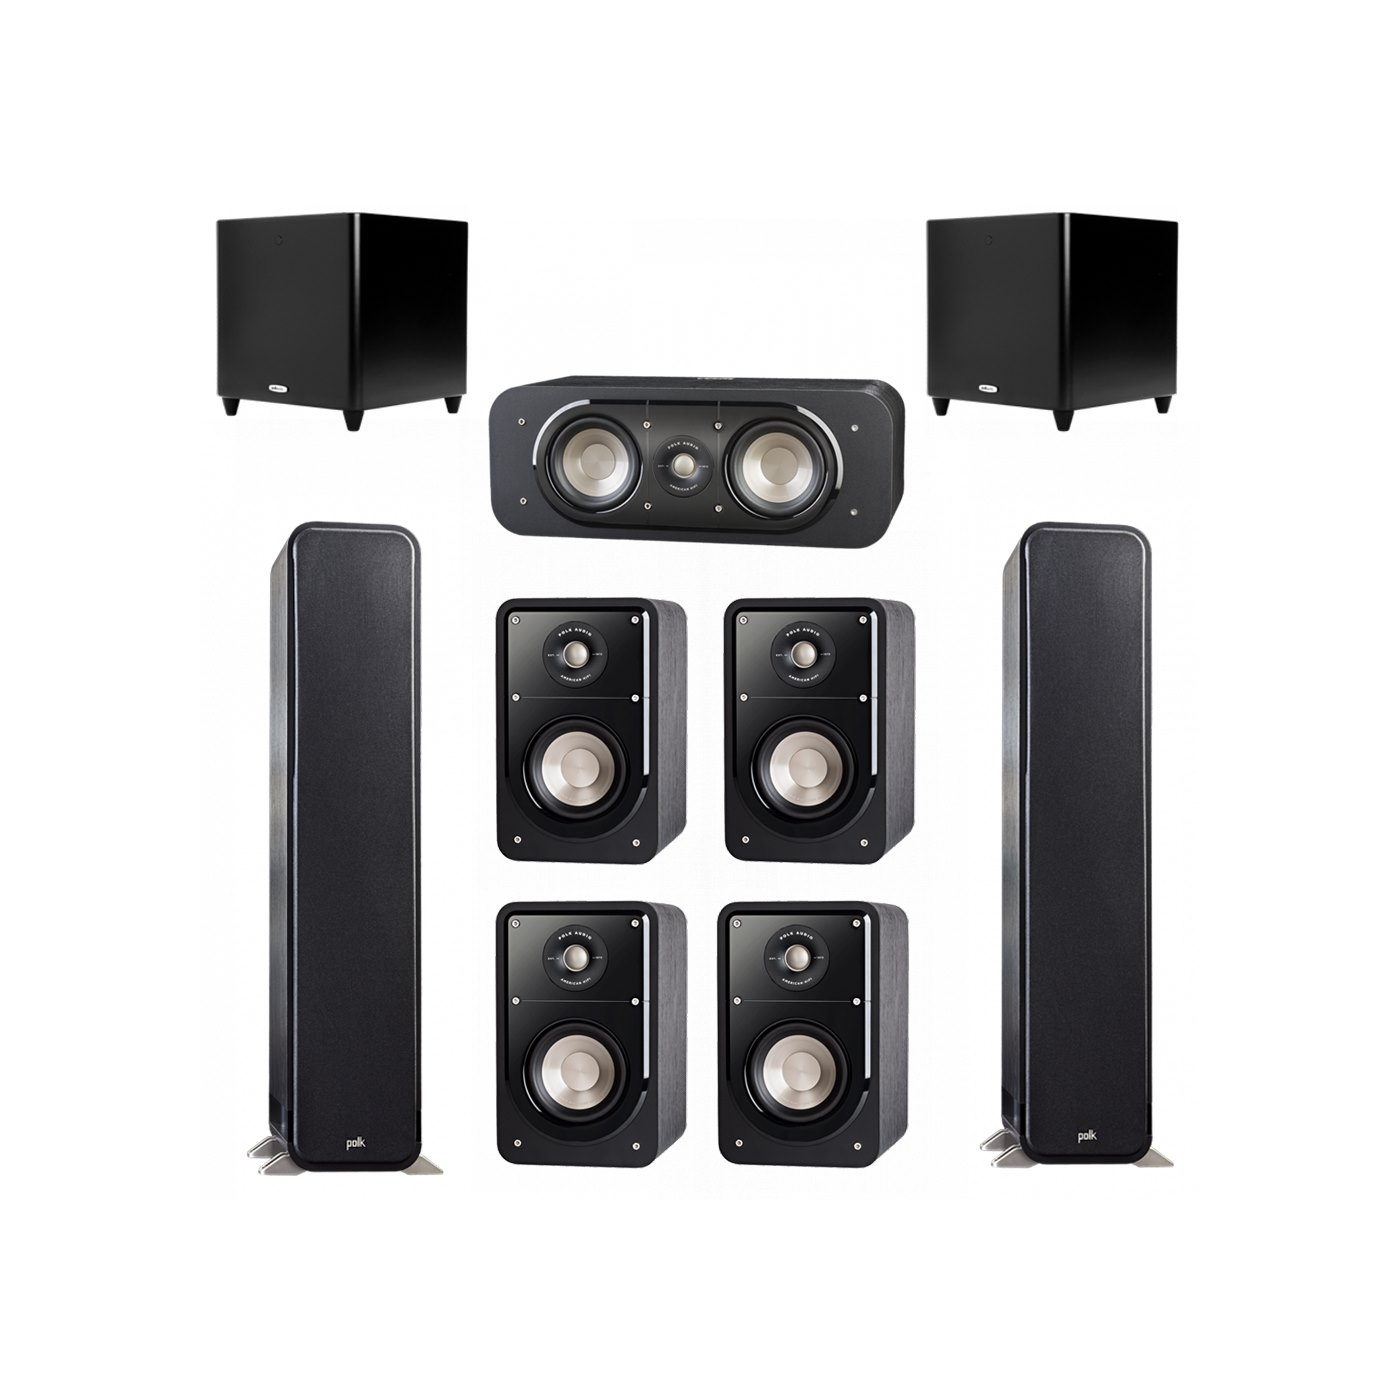 Polk Audio Signature 7.2 System with 2 S55 Tower Speaker, 1 Polk S30 Center Speaker, 4 Polk S15 Bookshelf Speaker, 2 Polk DSW PRO 660 wi Subwoofer